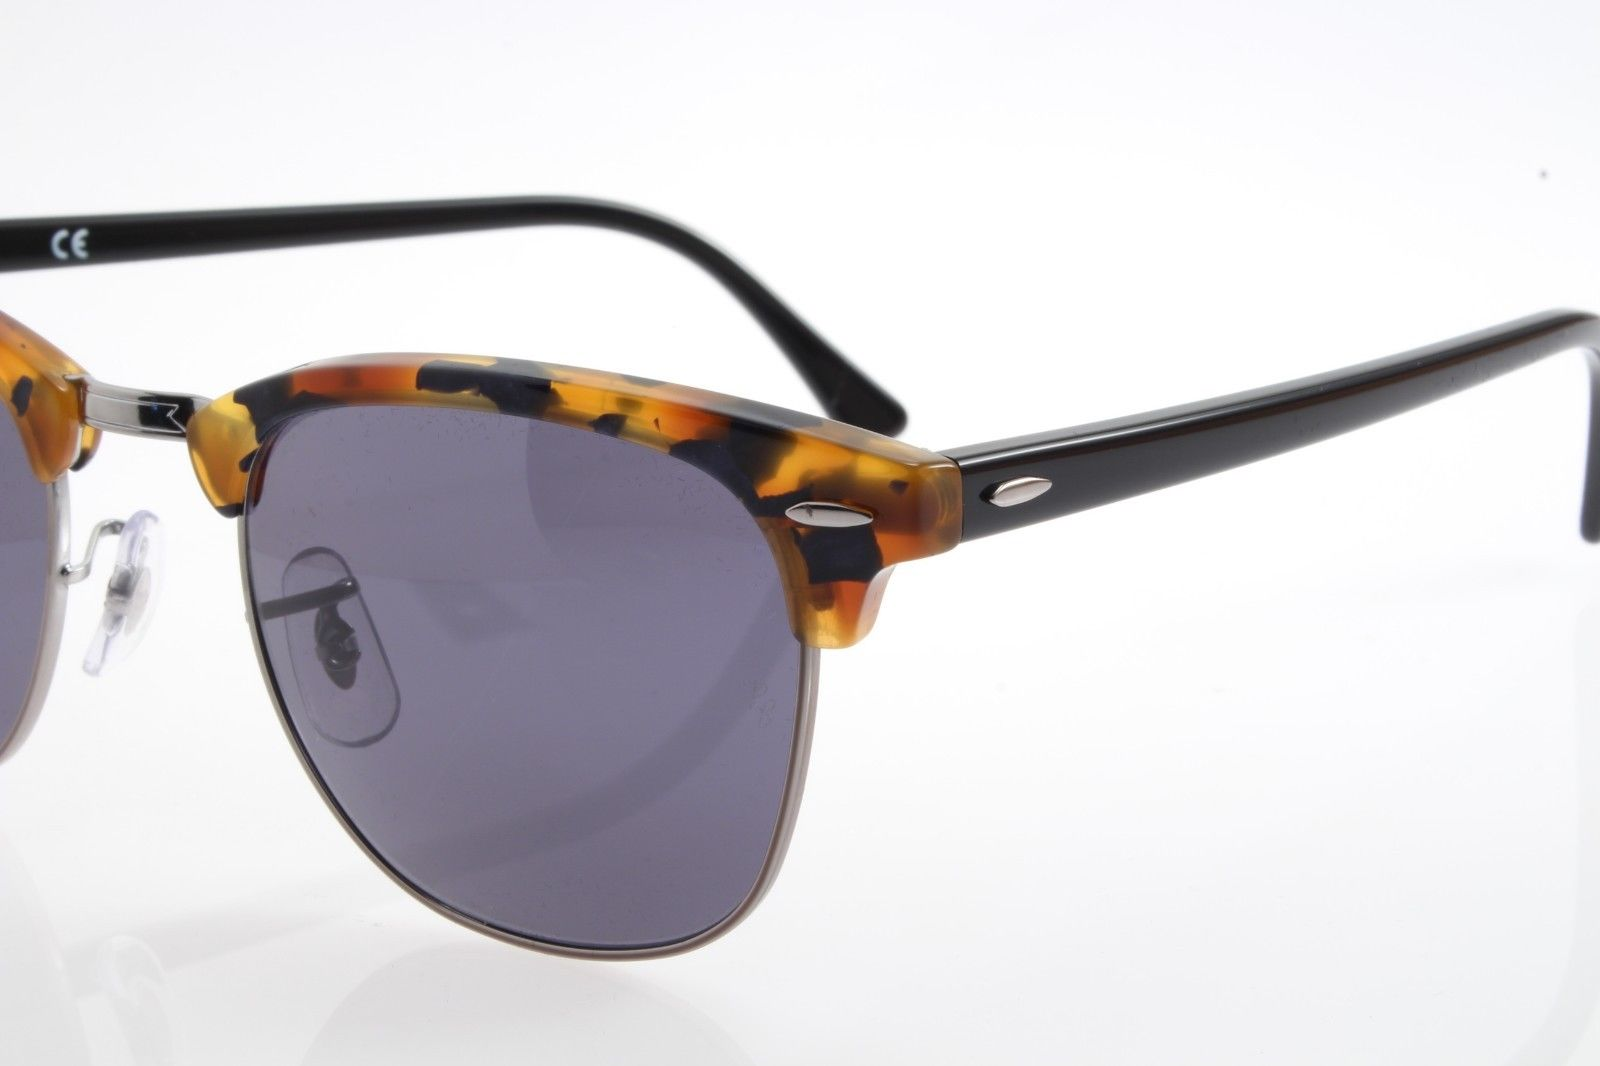 963b60b71 ... usa new original sunglasses ray ban rb 3016 1158 r5 clubmaster spotted  blue havana 23d86 11bd9